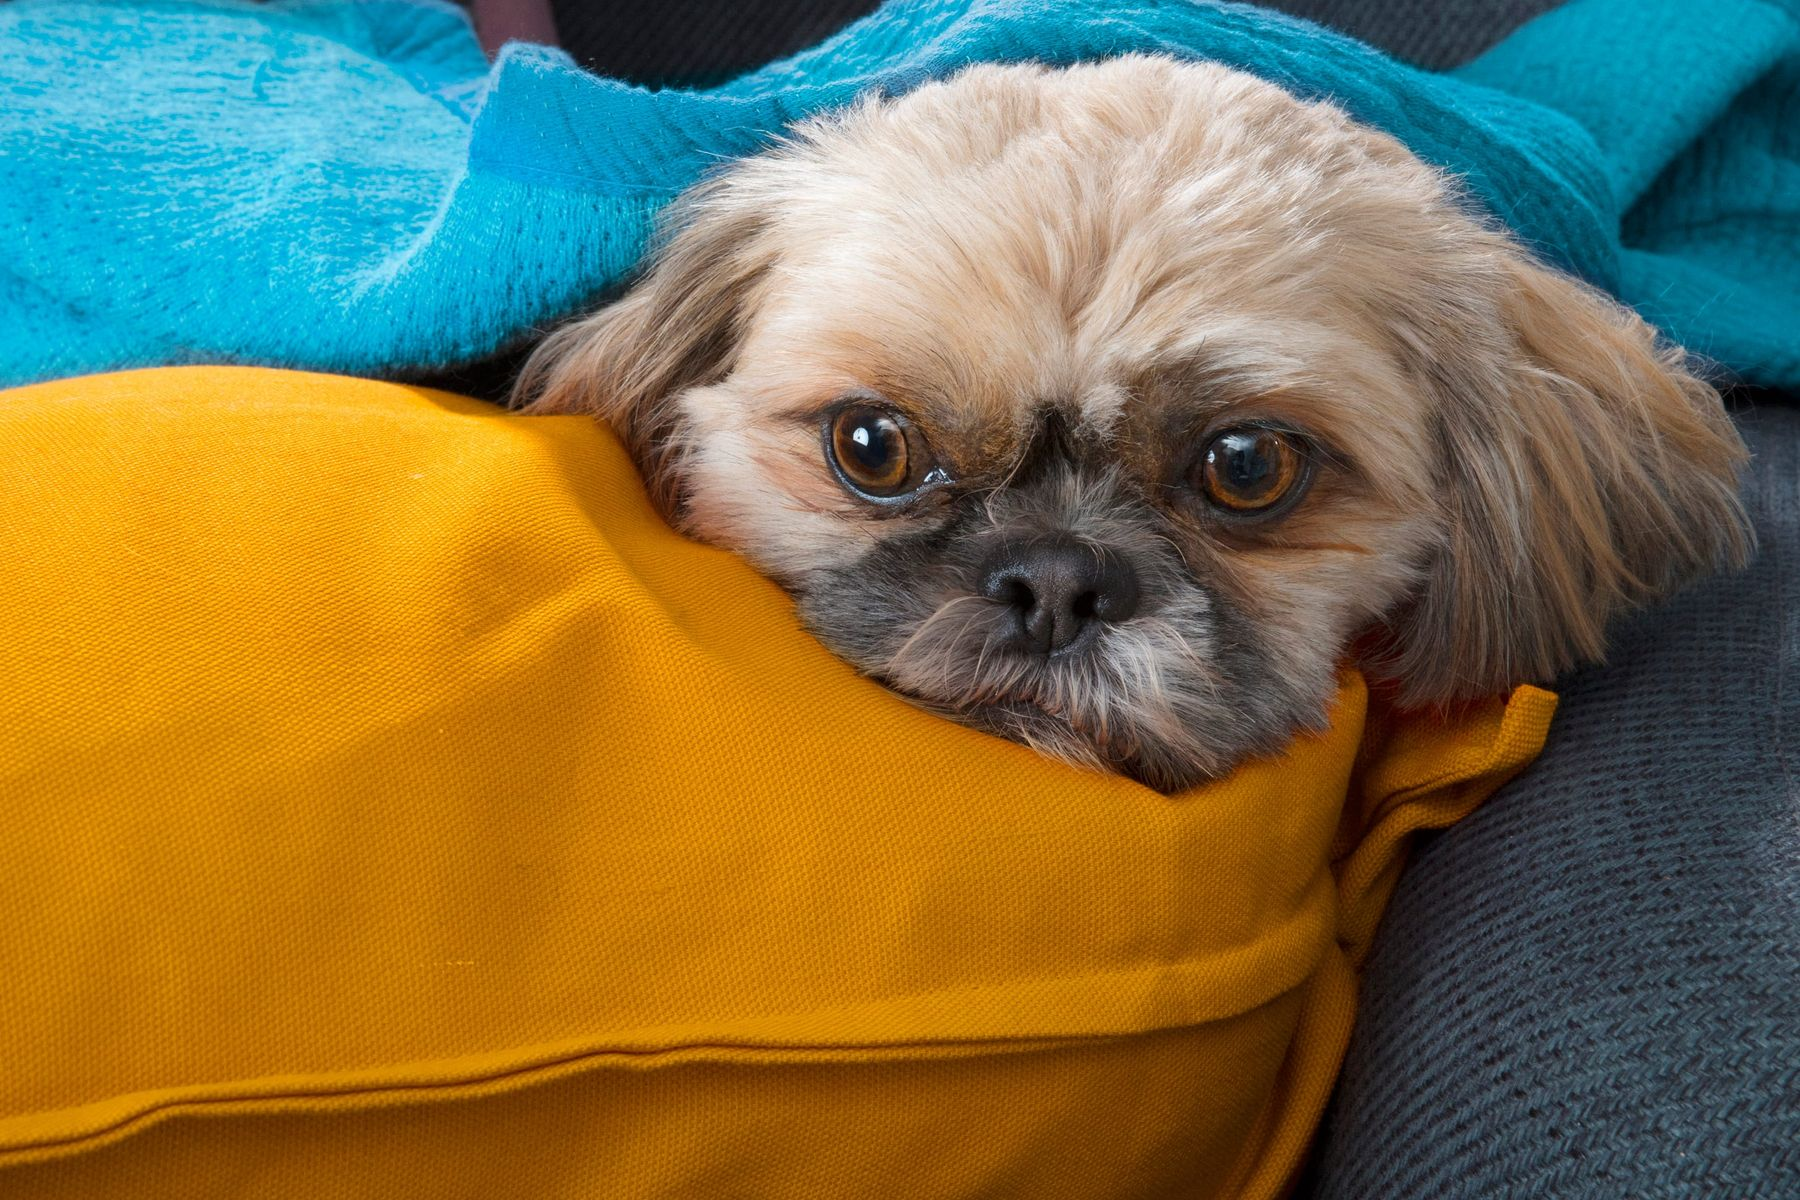 Dog wrapped in blue and yellow blankets